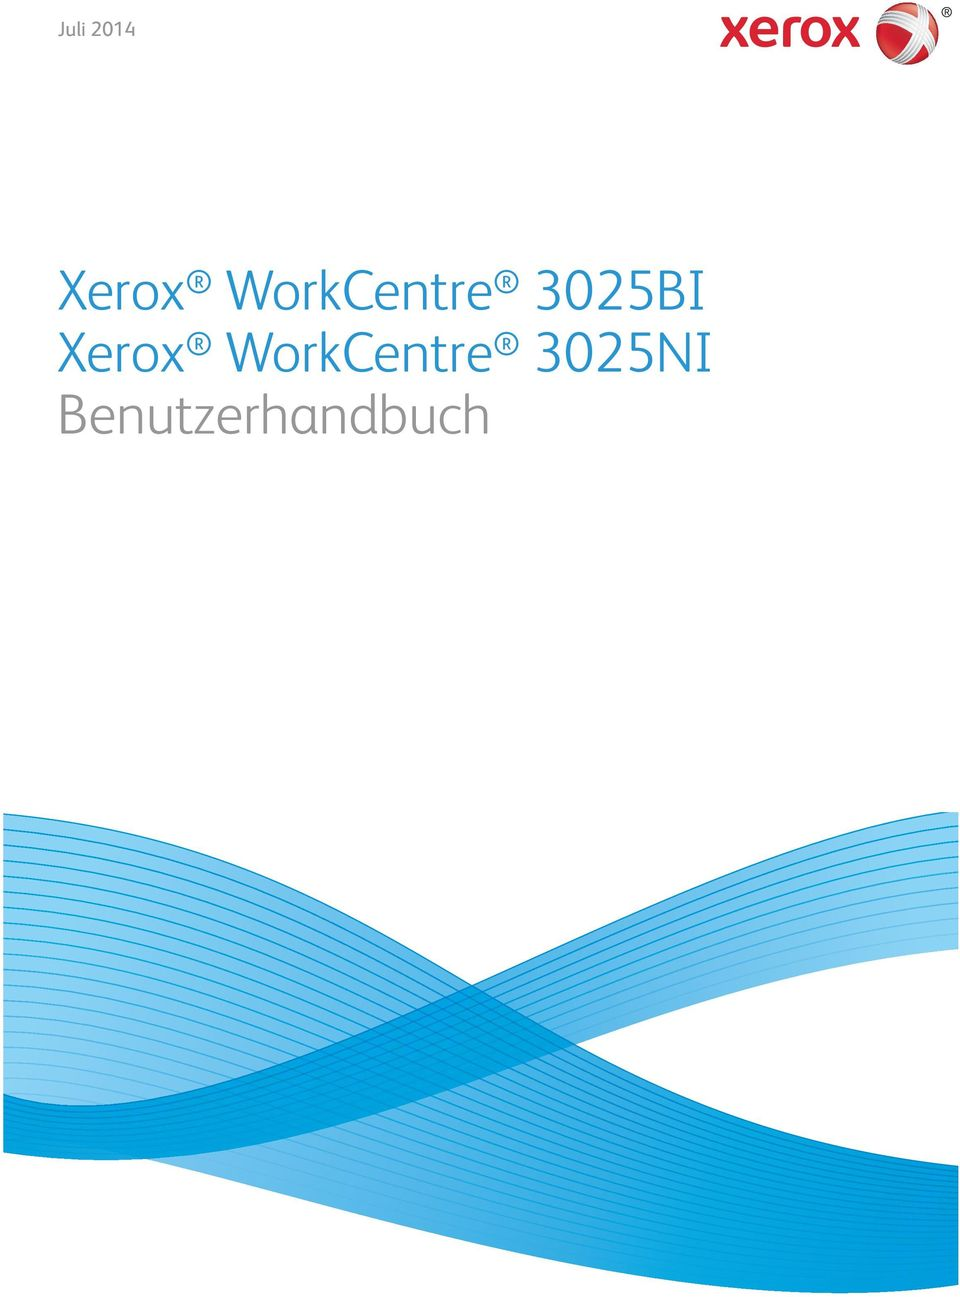 Juli Xerox WorkCentre 3025BI Xerox WorkCentre 3025NI